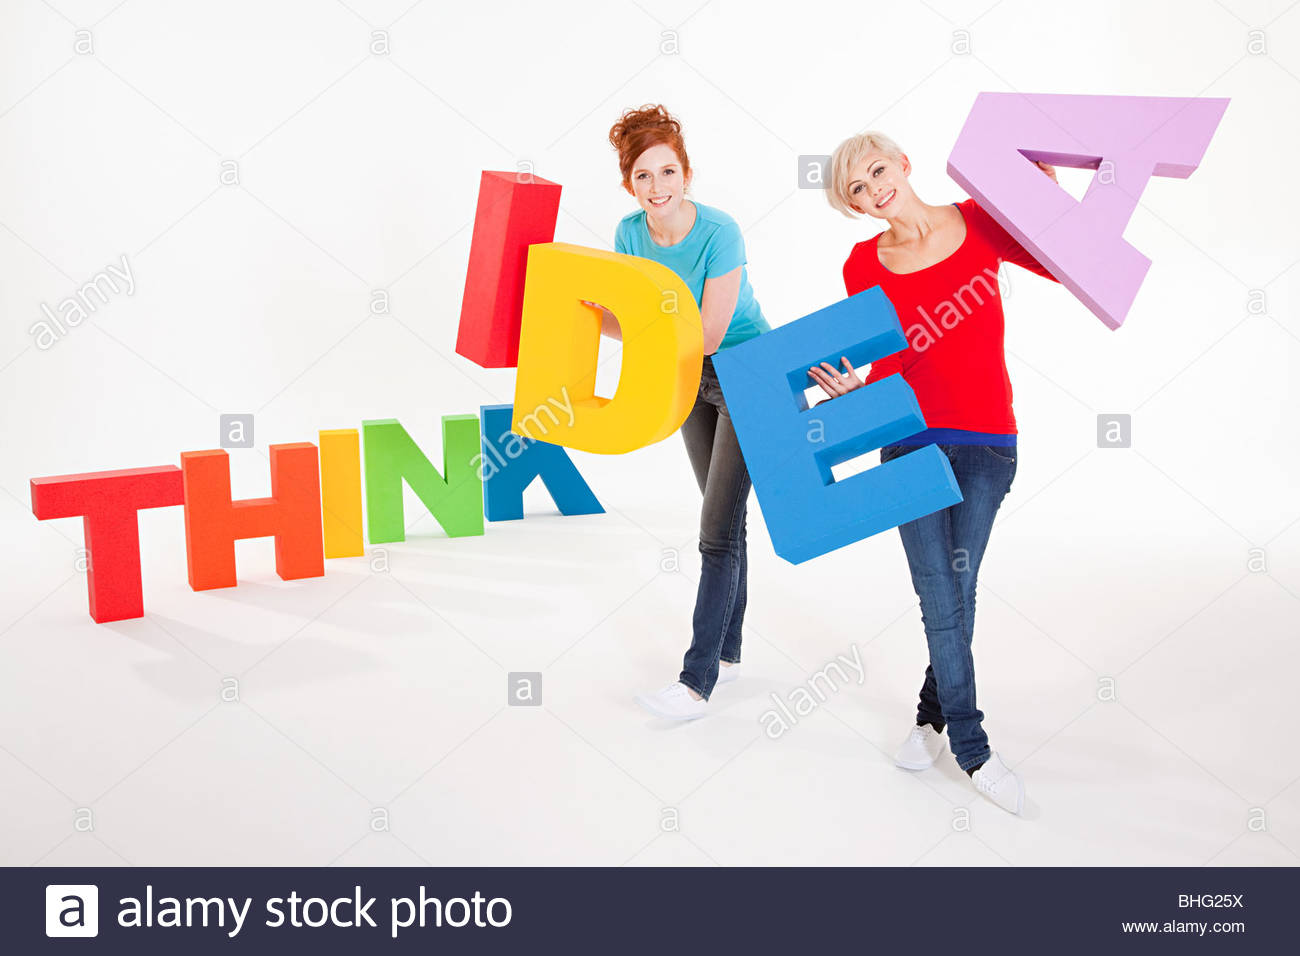 Women with words think and idea - Stock Image